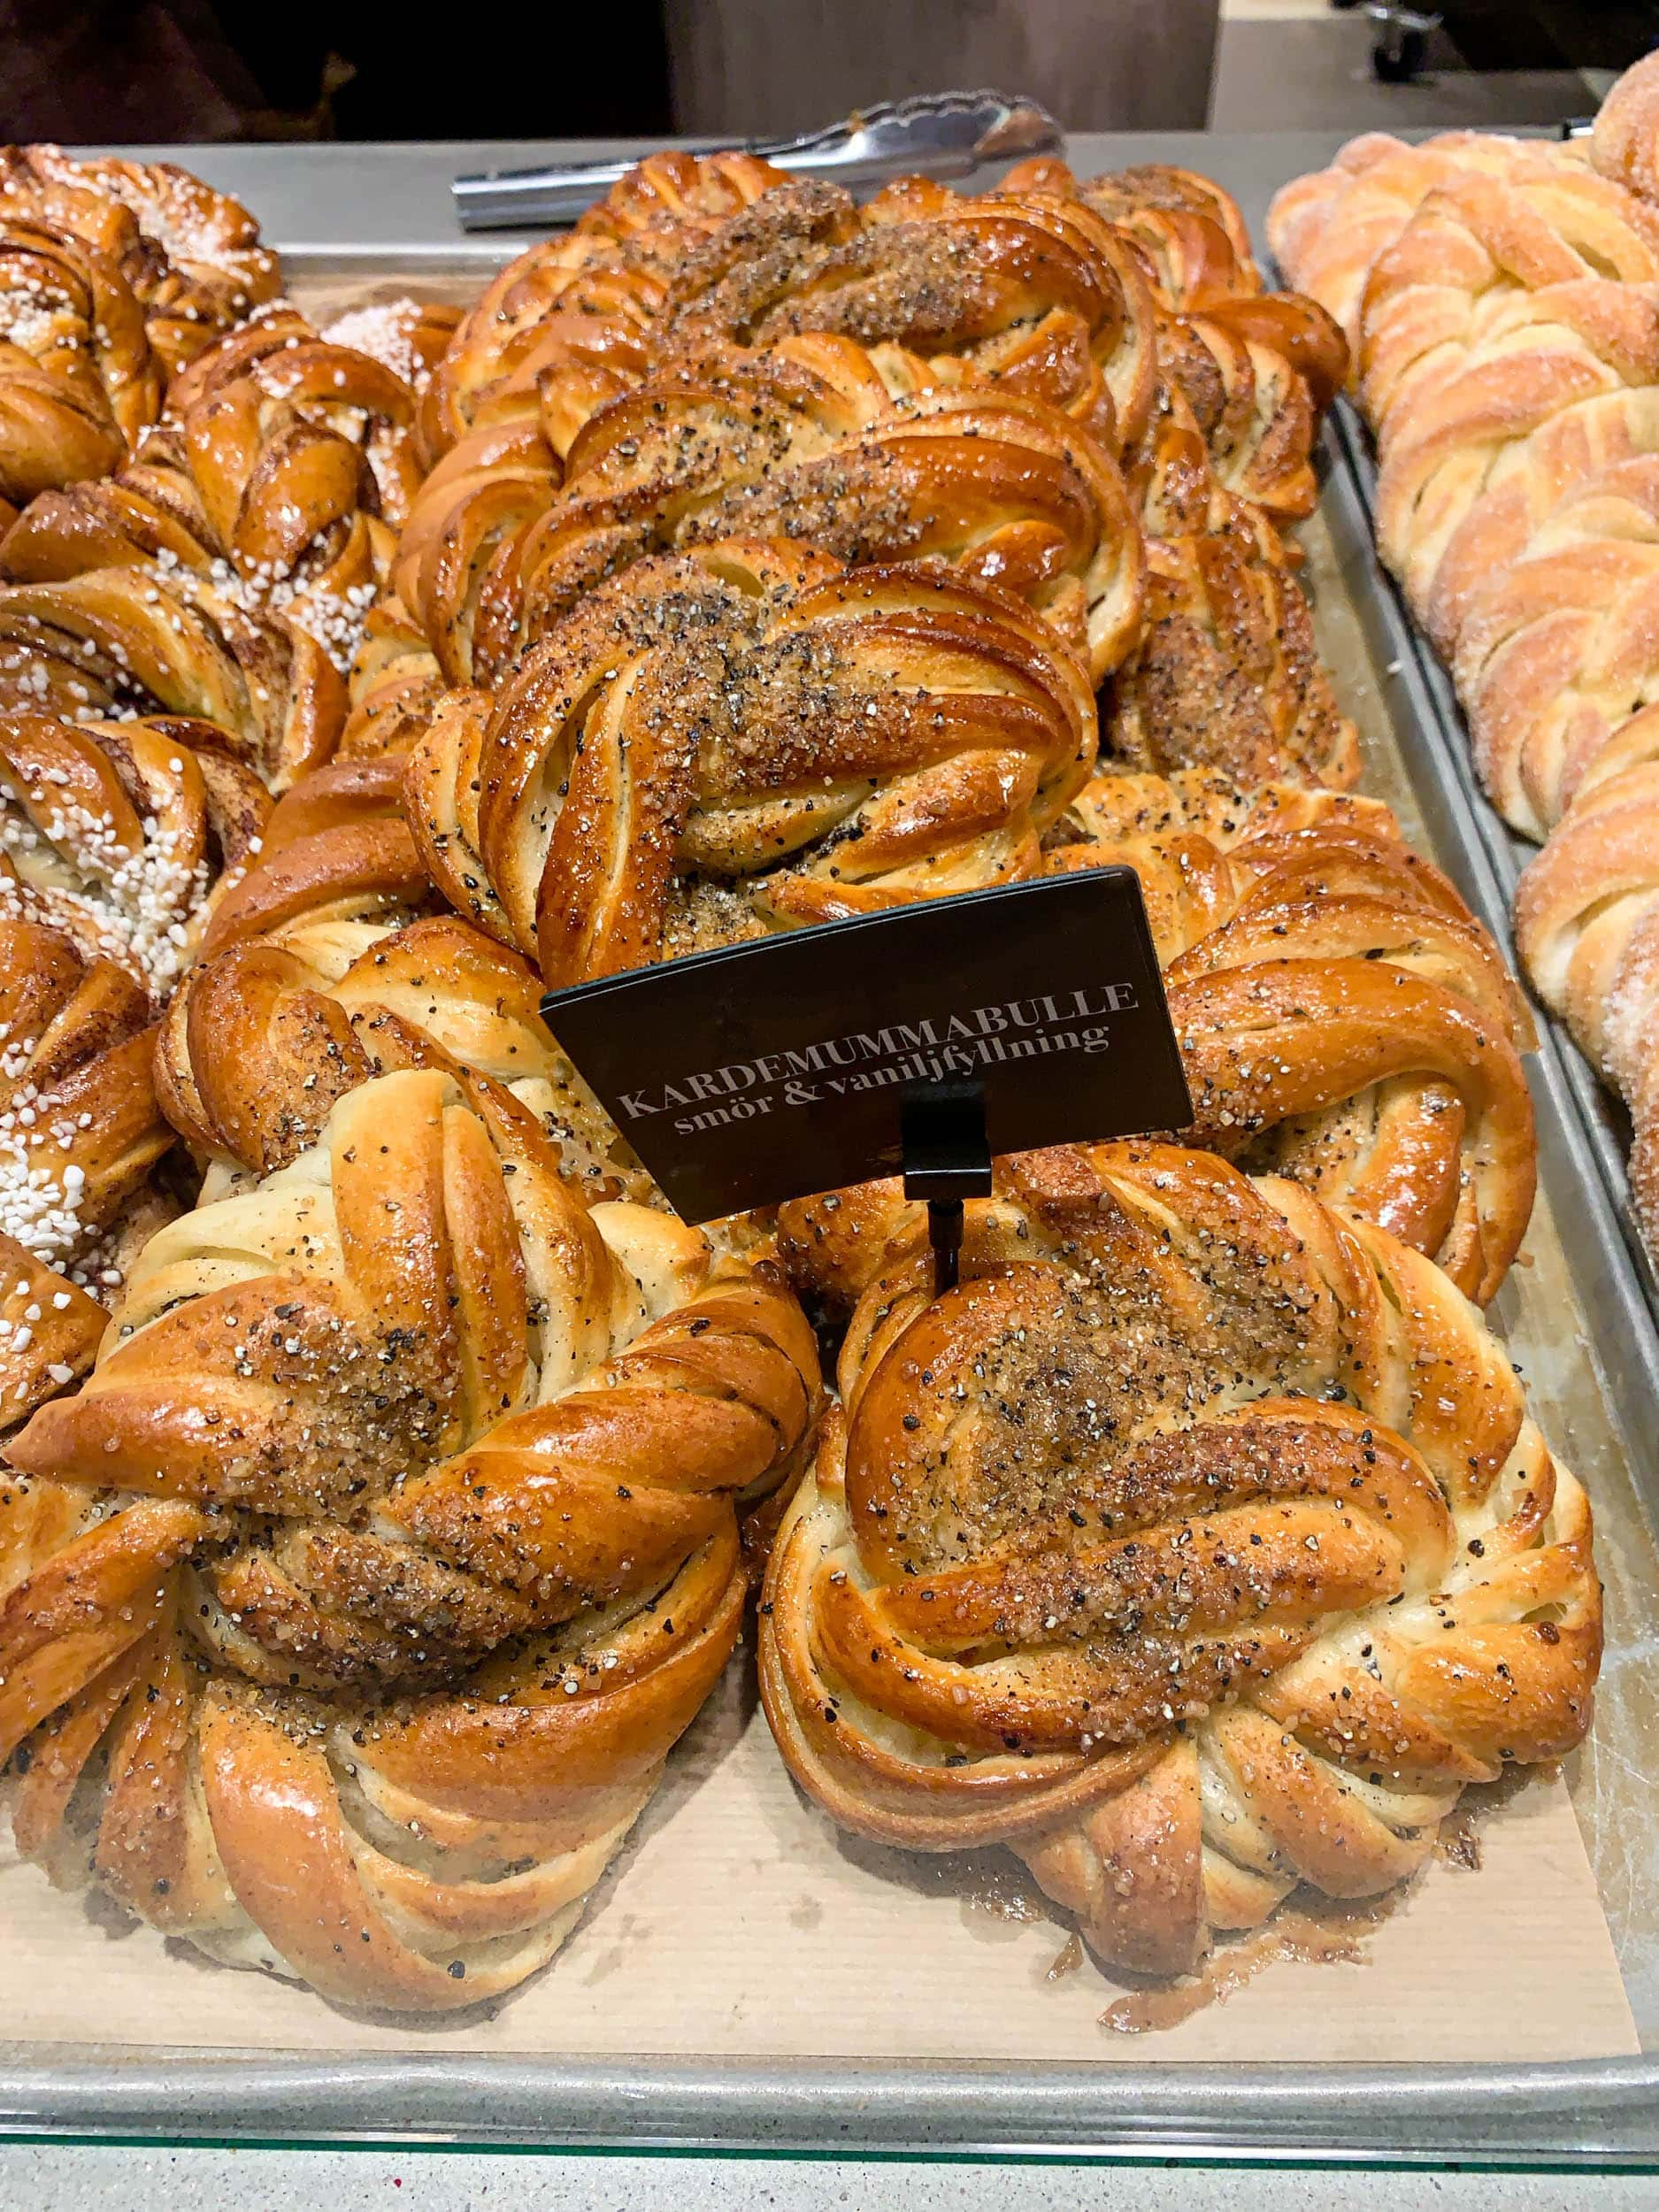 Cardamom buns at Mr. Cake